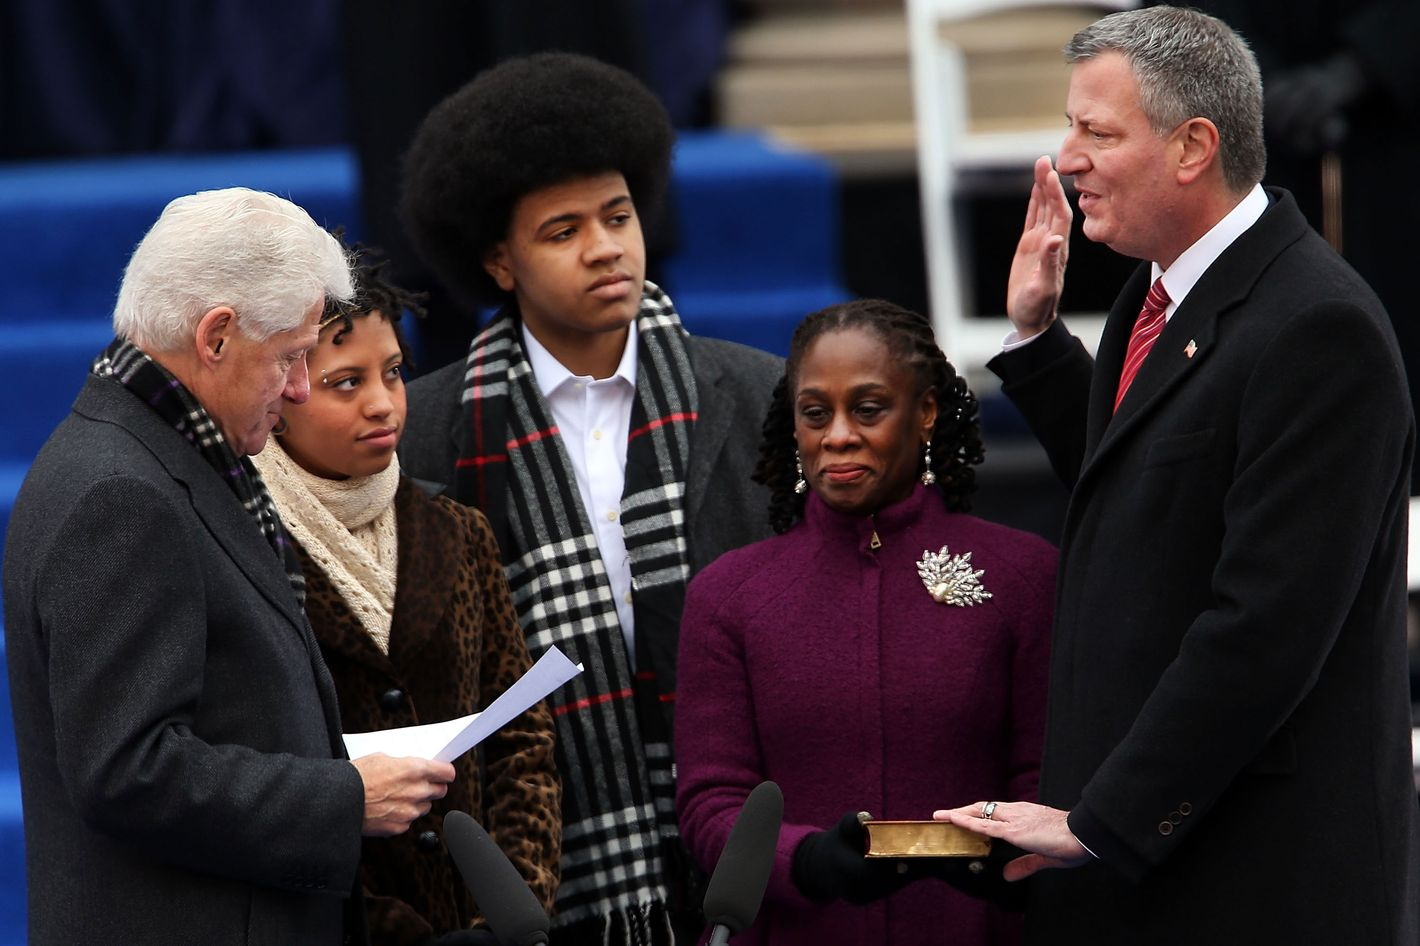 New York City's 109th Mayor, Bill de Blasio(right), is sworn in by former President Bill Clinton(left) as his family watches, Chiara de Blasio (2nd from left) Dante de Blasio (center) and wife Chirlane McCray (2nd from right) at City Hall on January 1, 2014 in New York City. Mayor de Blasio was sworn in using a Bible once owned by President Franklin Delano Roosevelt. Following the 12 years of the Michael Bloomberg administration, Mayor de Blasio won on a liberal platform that emphasized the growing gulf between the rich and poor in New York City.